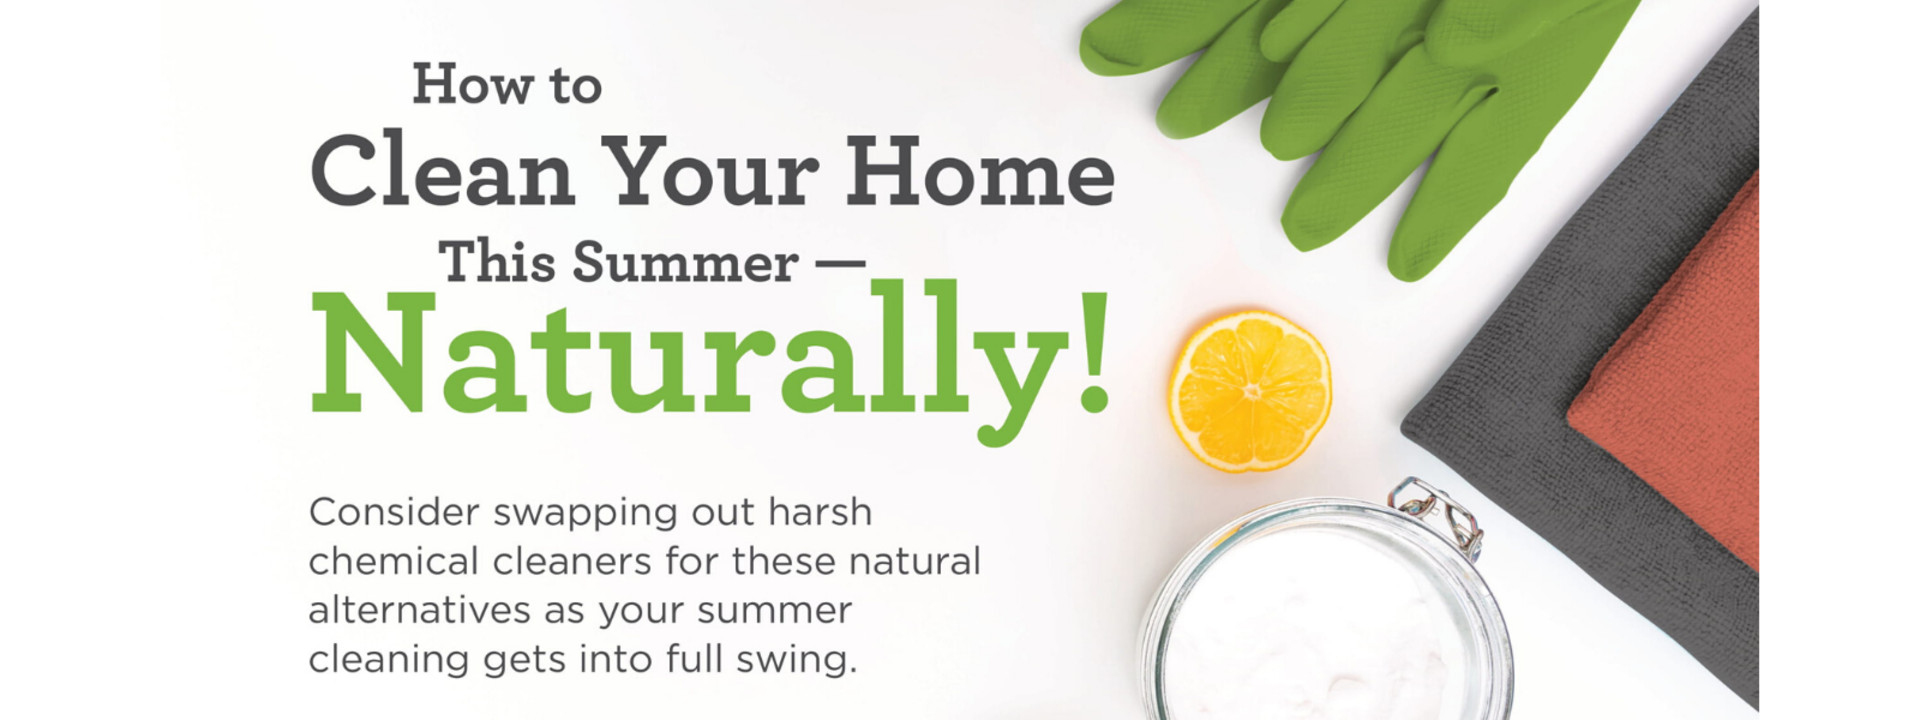 How to Clean Your Home This Summer – Naturally!